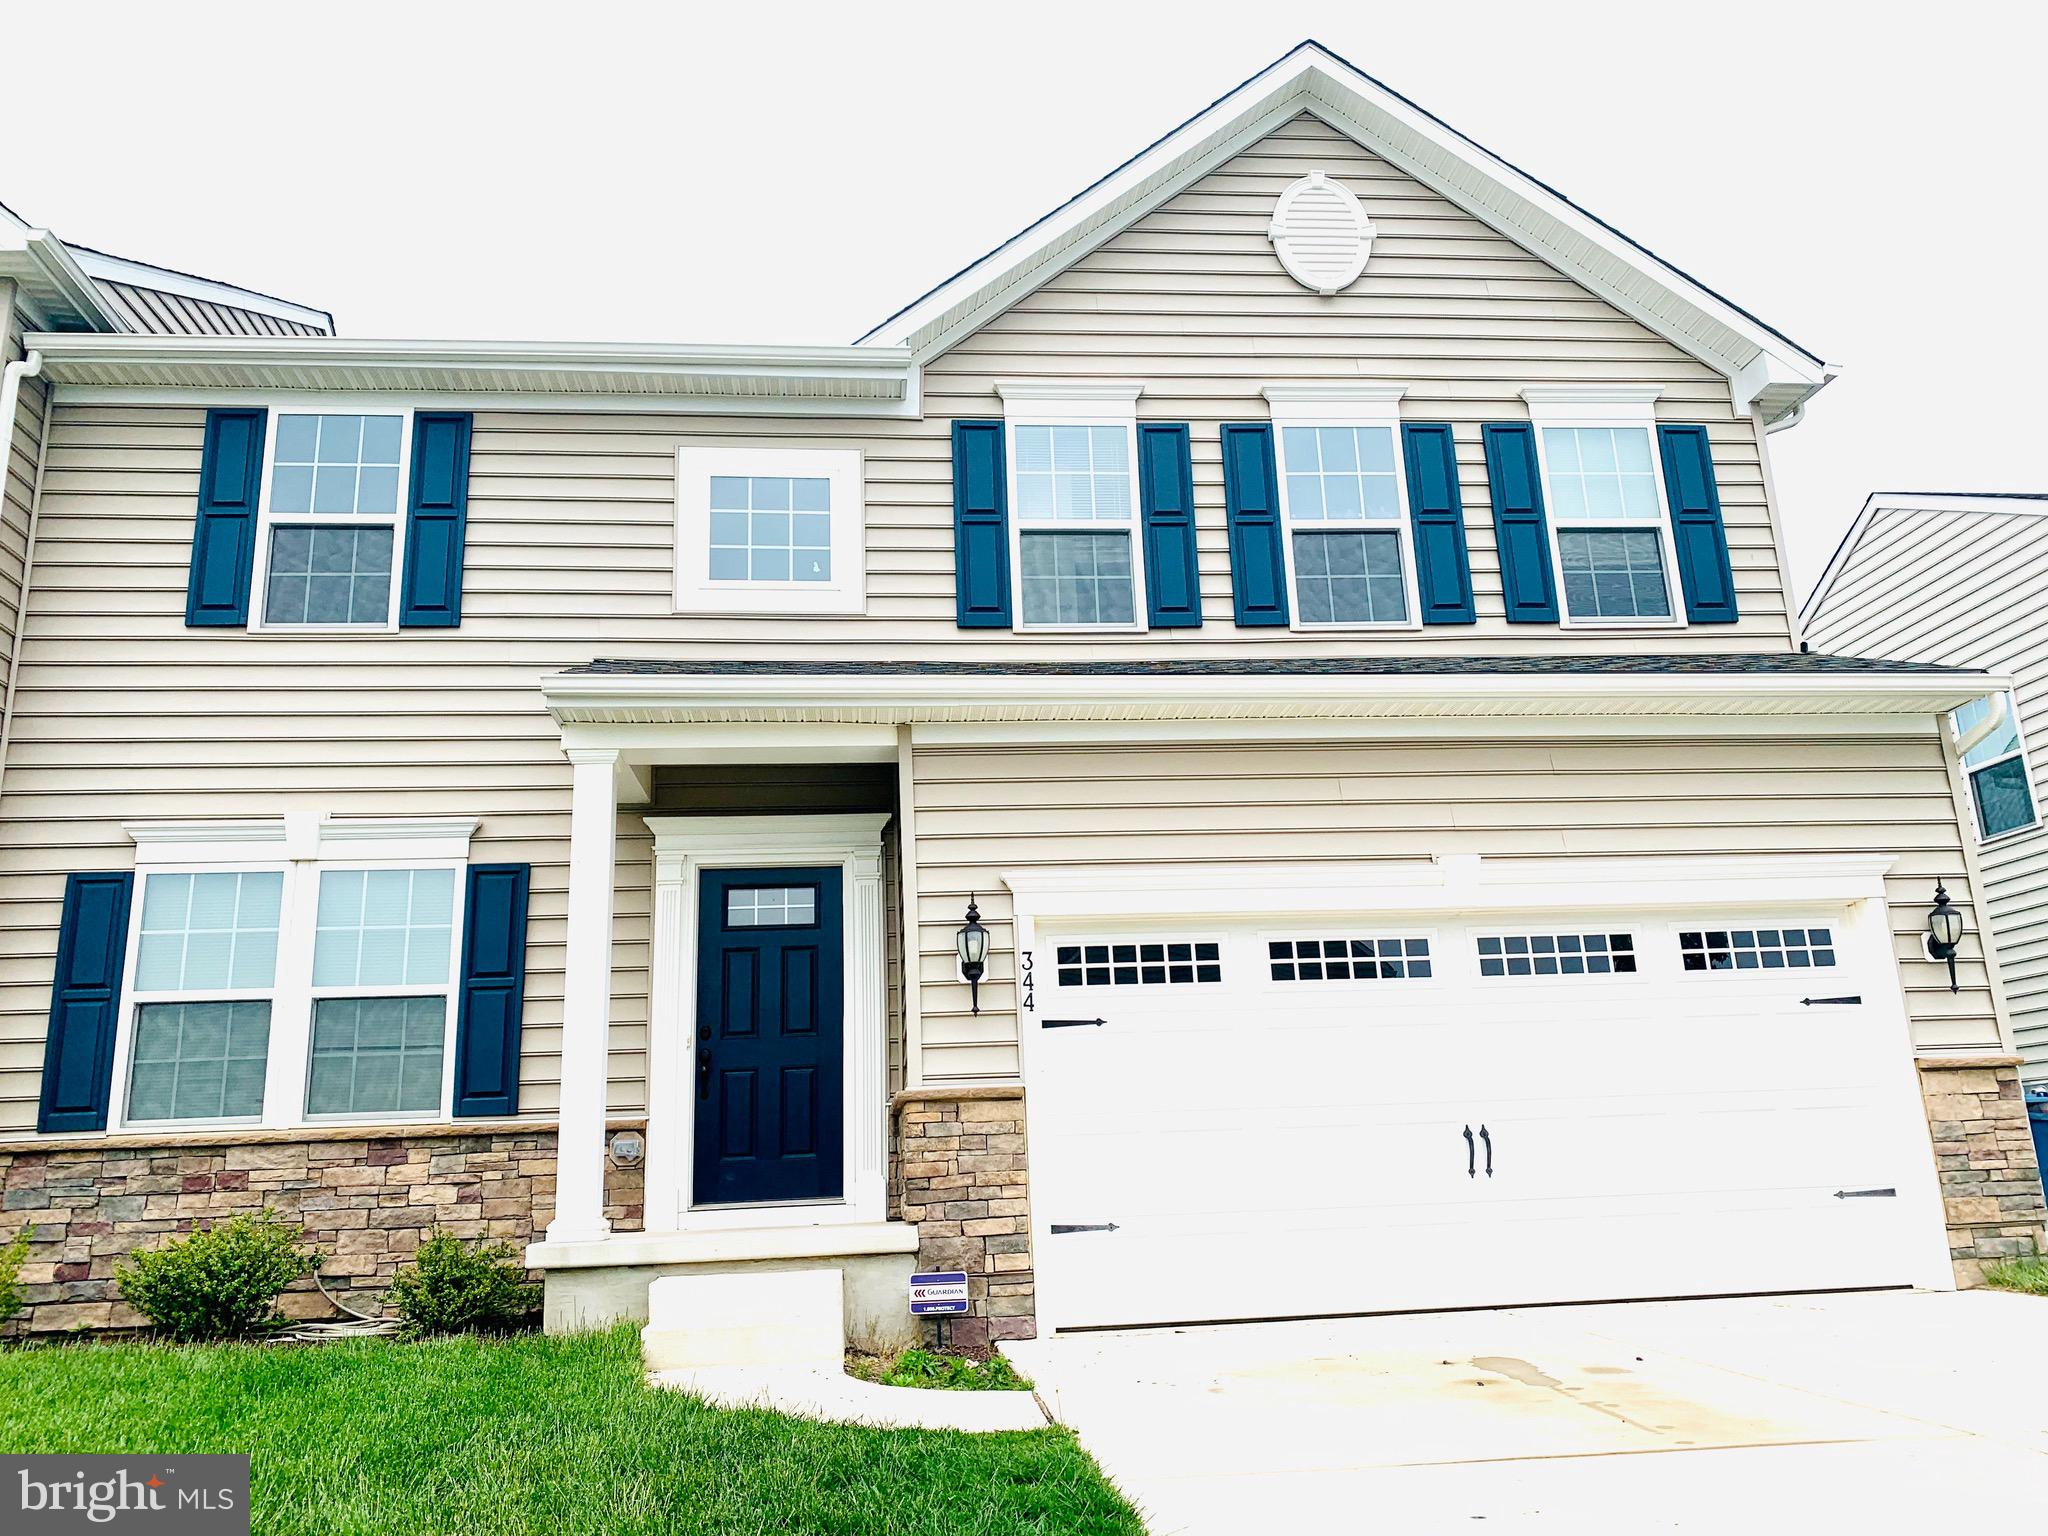 Welcome to High Hook Farms!!  This barely 3 year old Semi-detached Venice model is one of Ryan Homes most popular floor plans! Upon entry, you are greeted by a flex space that can be used for a formal living area or office. Just beyond the flex room is a powder room to your right for your guests convenience! Beyond the powder room, this home opens up to a LARGE great room that is open to the dining room and open kitchen. Upstairs, there is a large Master with a HUGE walk-in closet, with a 4 piece bath that includes a soaker tub, stand up shower and double sinks! The guest rooms are also very large for a carriage home and there is even UPSTAIRS LAUNDRY for the families convenience. Make your way to the basement and enjoy a Large finished space that can accommodate your families entertainment and recreational needs. There is also a spacious unfinished section in the basement that can be used to add an additional bath or in law suite. This homes boasts 4 large bedrooms, an open floor plan, a fully finished basement, PAVER PATIO, 2 car garage and a large playground for children in the community. This home is just minutes from rt1 and shopping and best of all it is in Delaware's #1 School District, Appoquinimink! Make this your new home TODAY!!